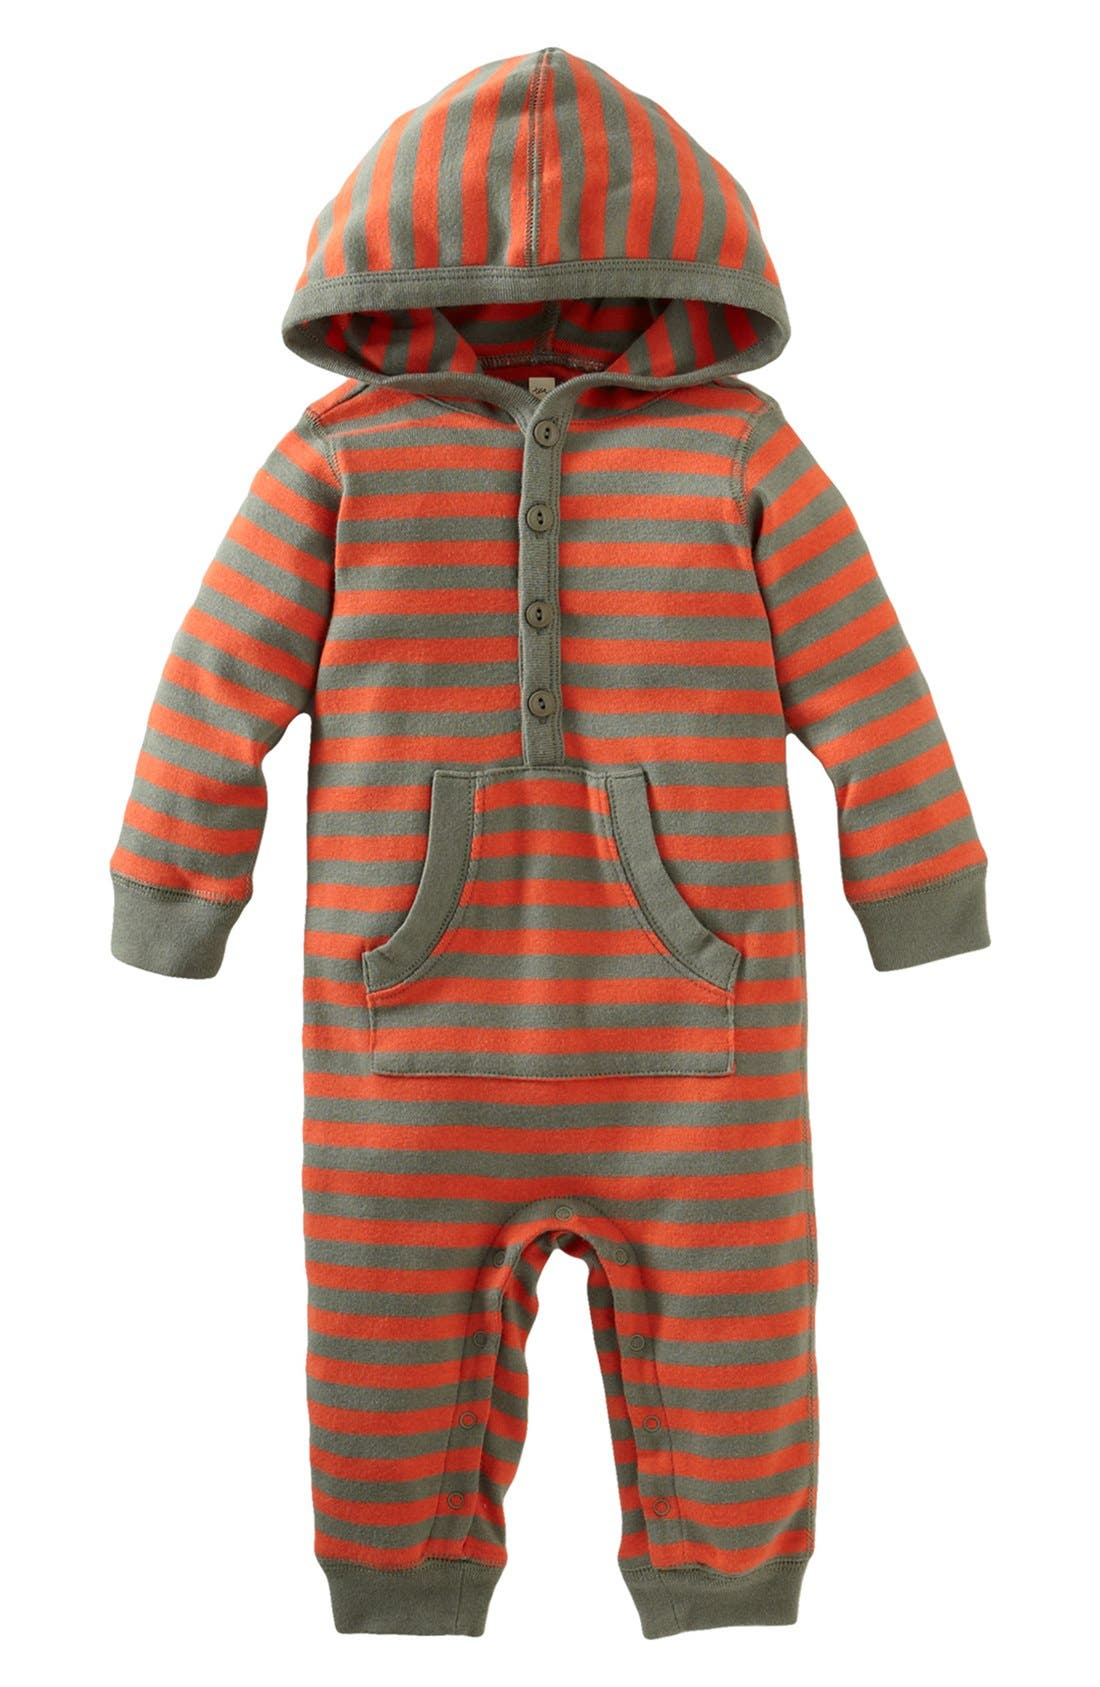 Alternate Image 1 Selected - Tea Collection 'City Stripe' Hooded Henley Romper (Baby Boys)